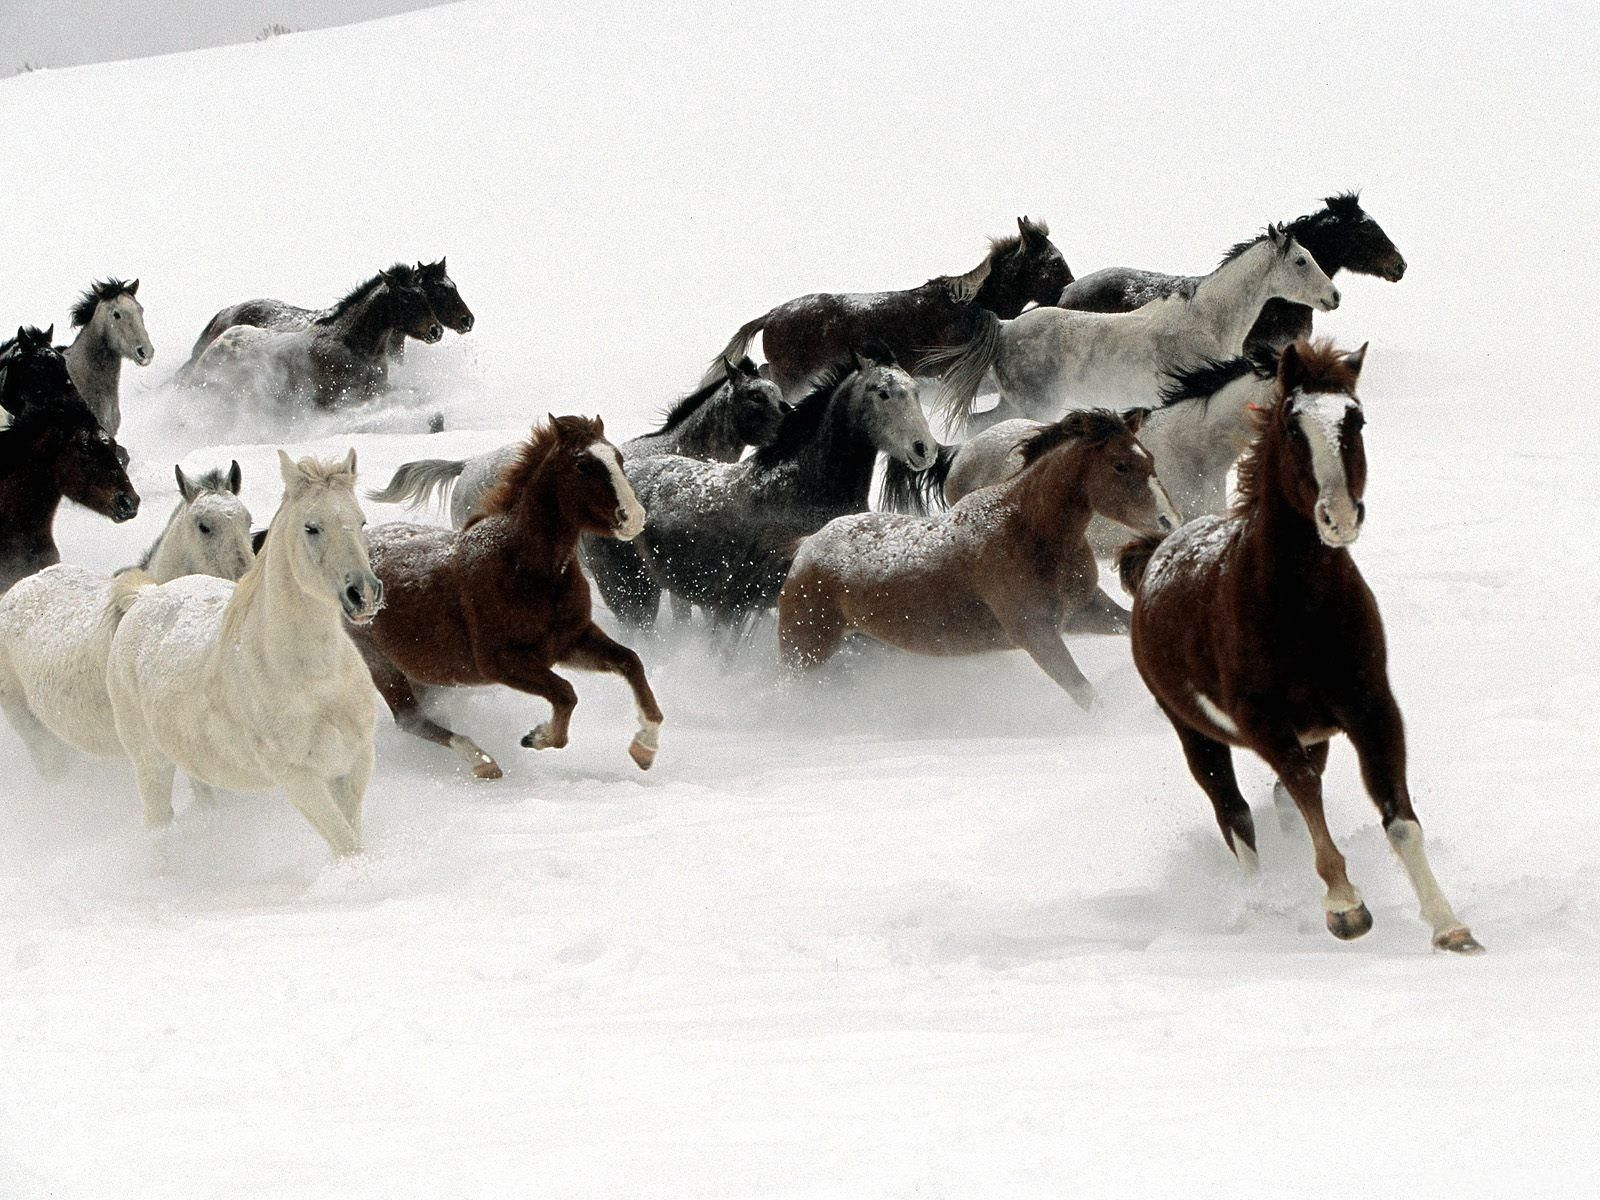 140554 download wallpaper Animals, Horses, Herd, Run Away, Run, Snow screensavers and pictures for free